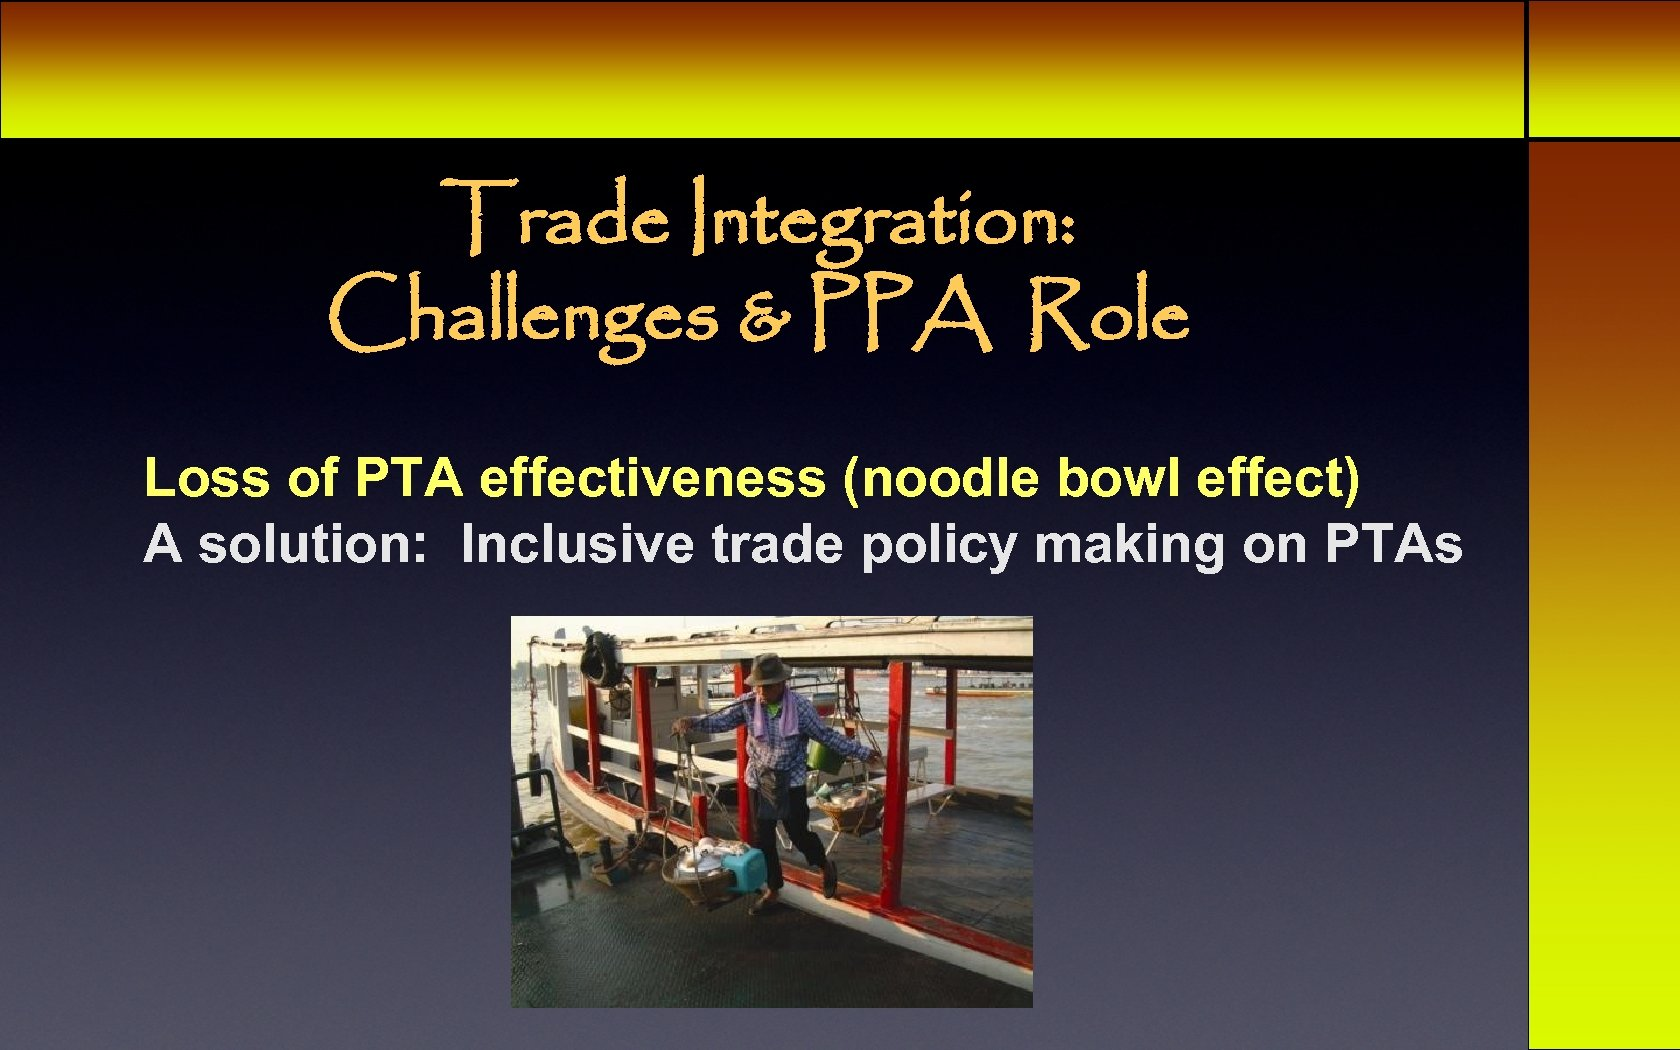 Trade Integration: Challenges & PPA Role Loss of PTA effectiveness (noodle bowl effect) A